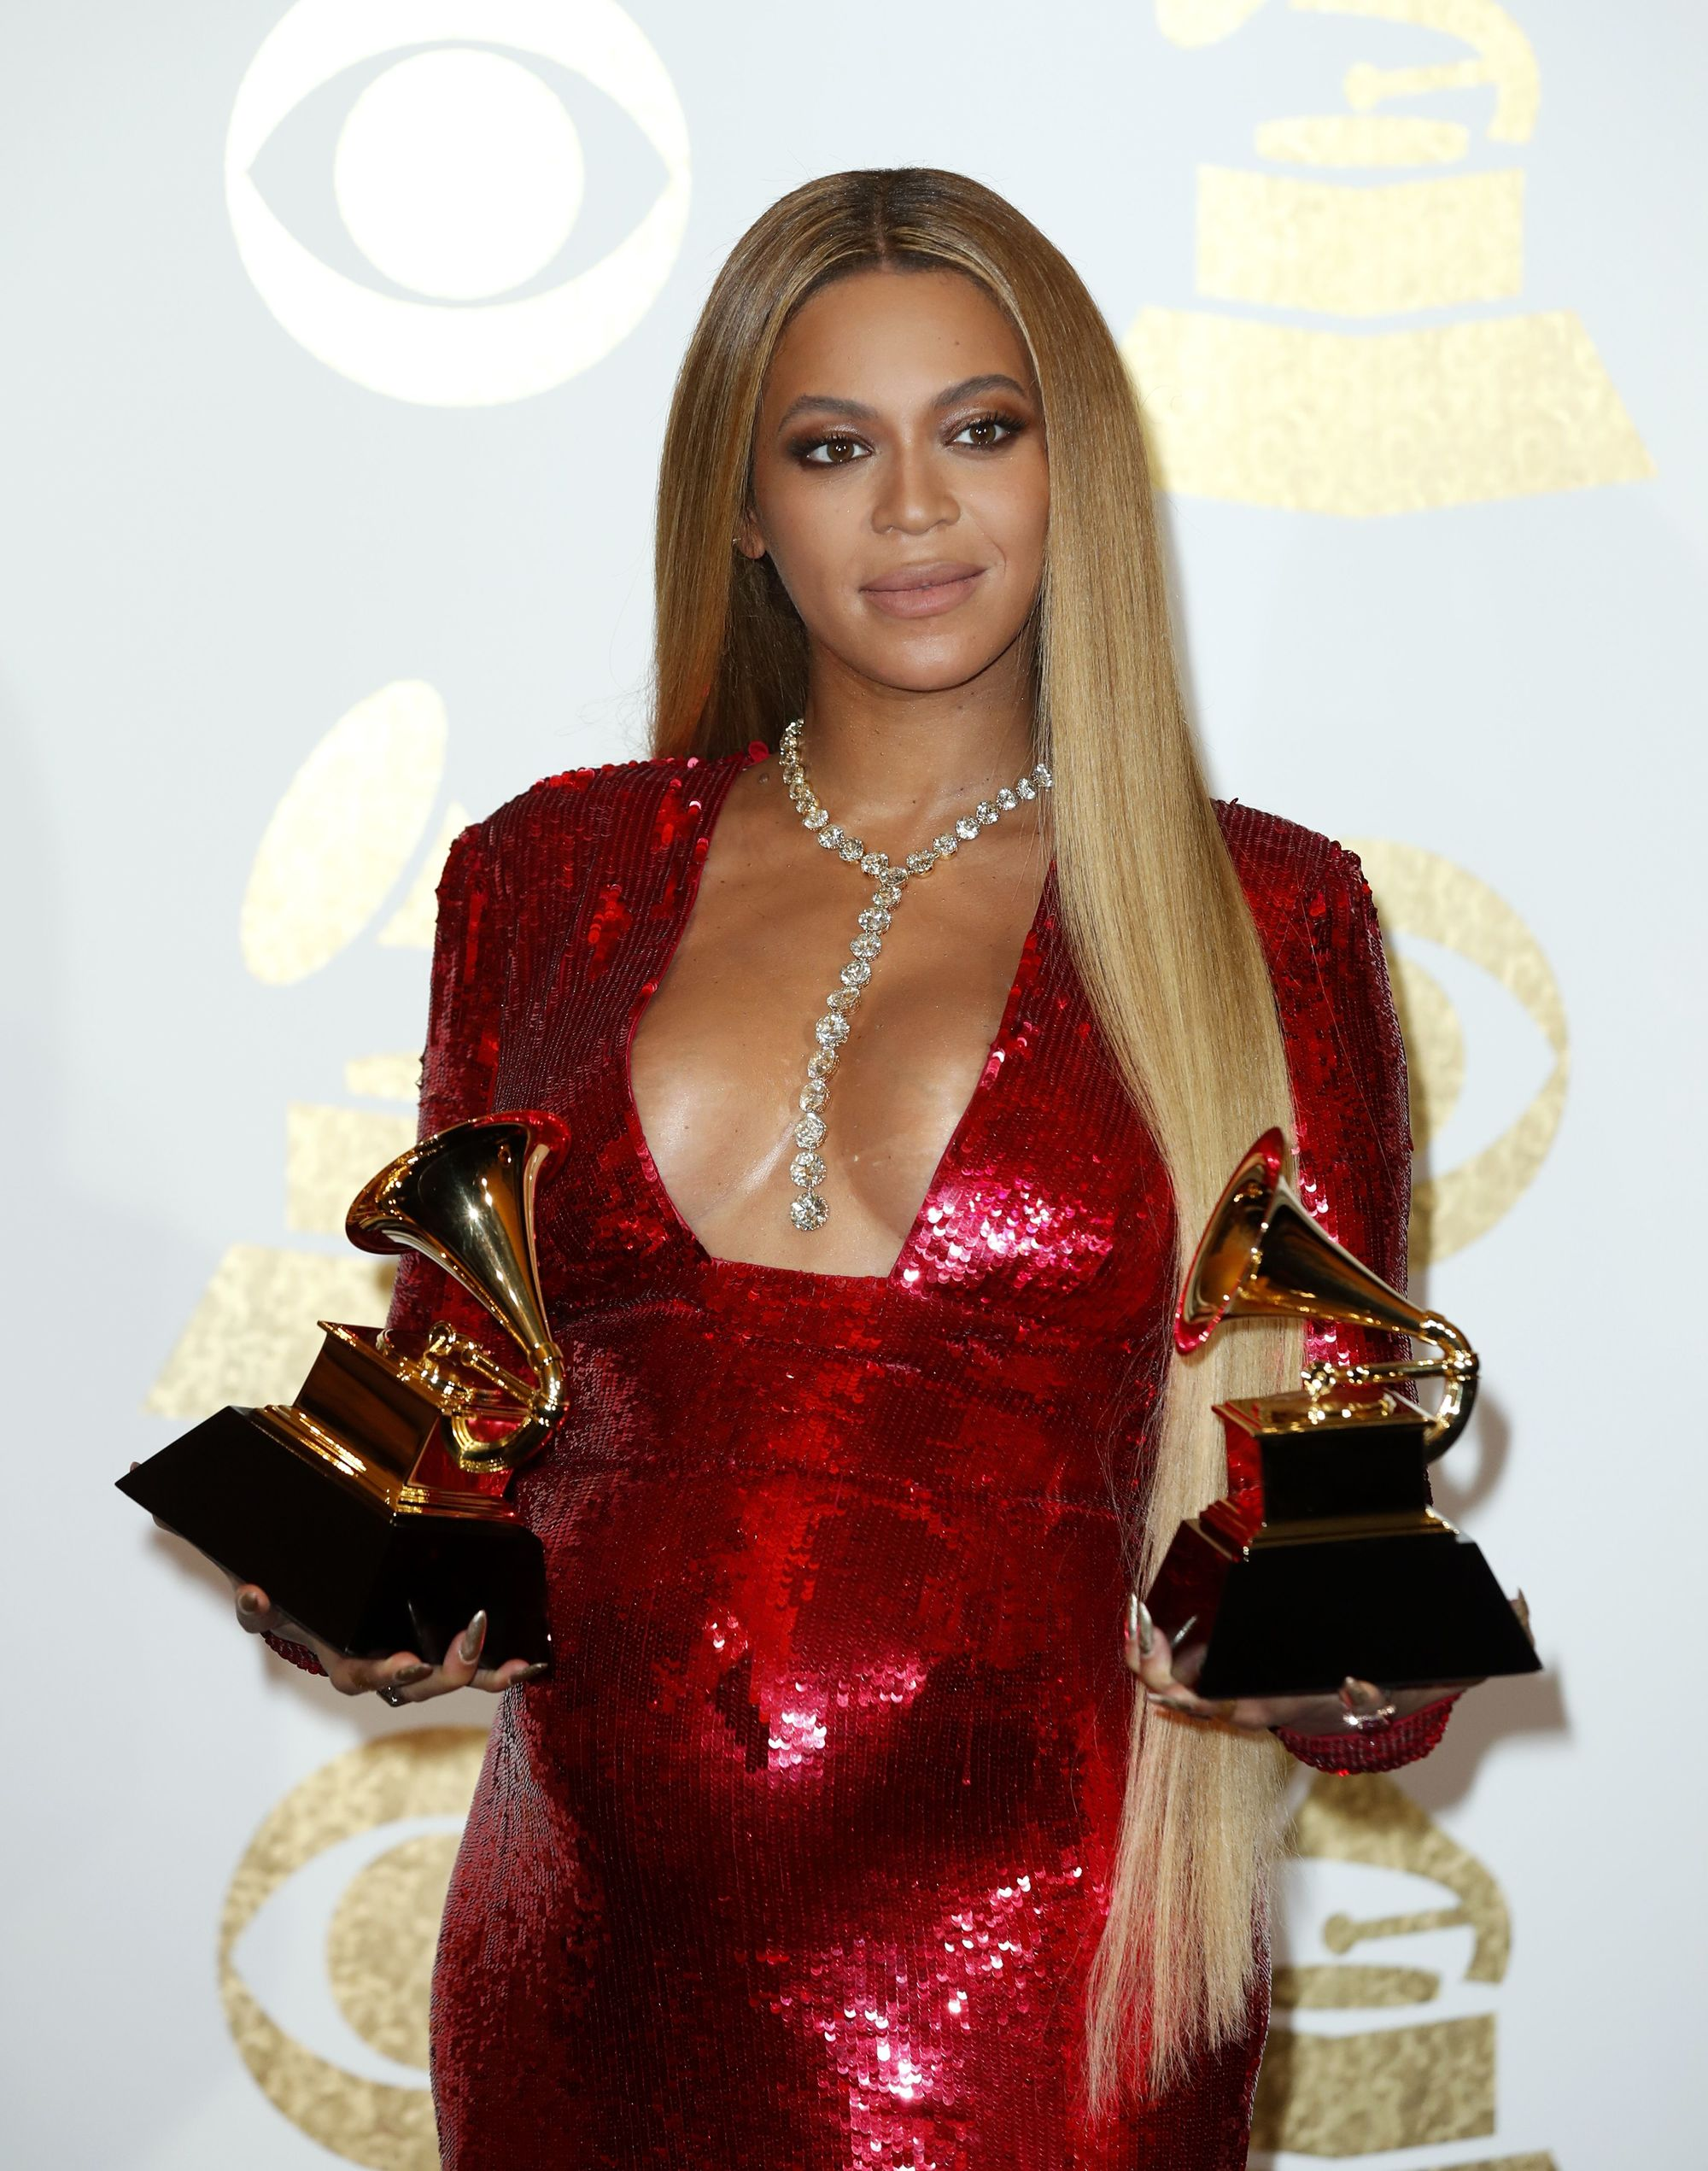 Beyonce with very long blonde straight hair at Grammy red carpet